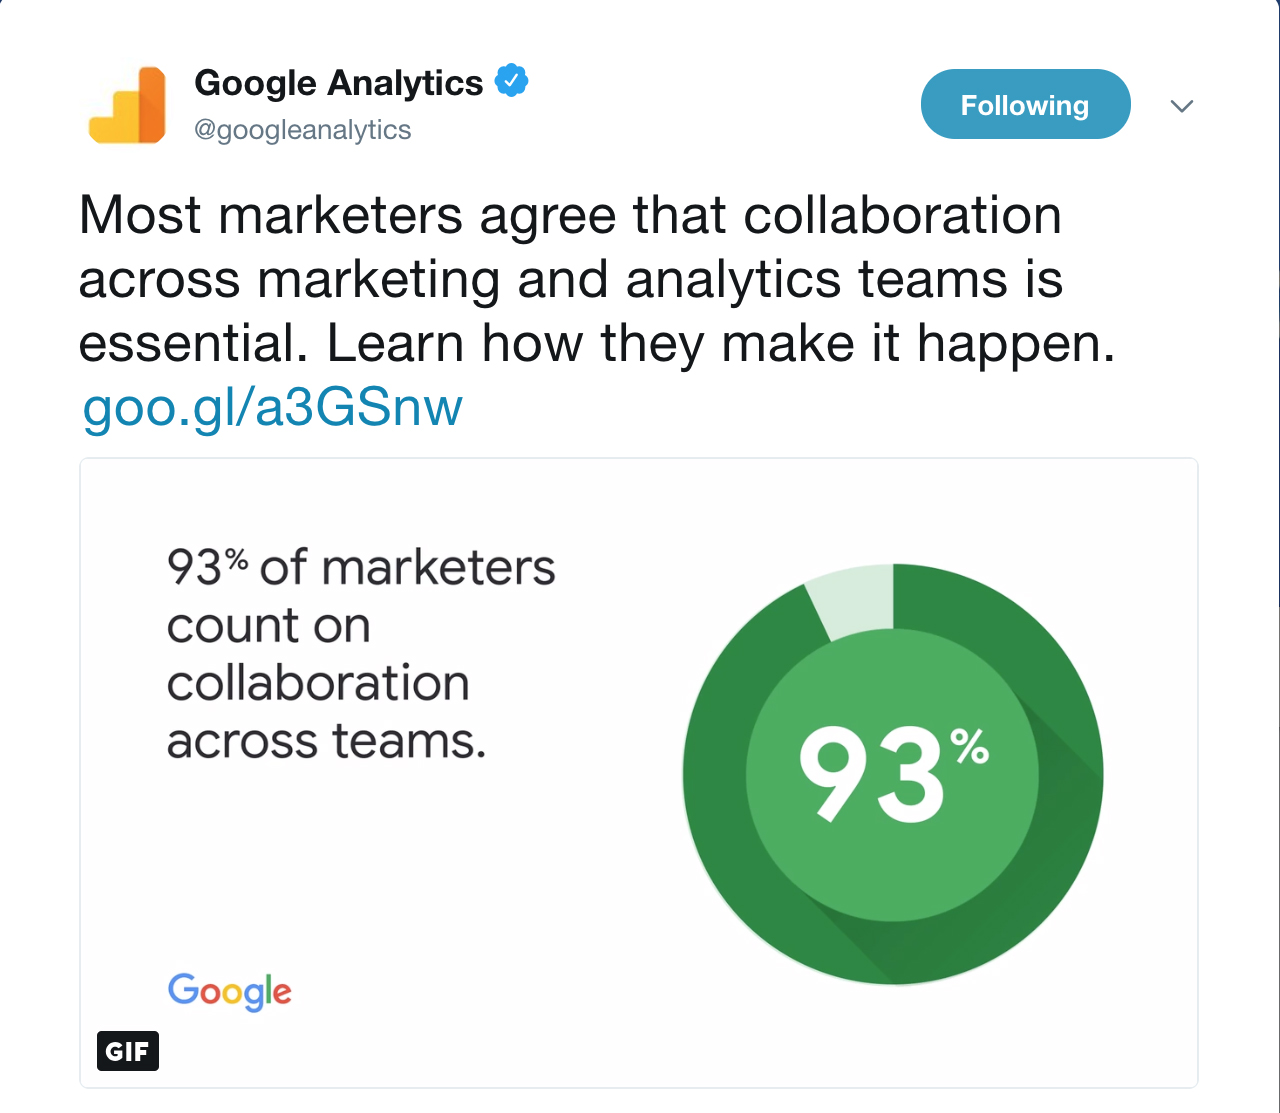 google-analytics-tweet-2.jpg